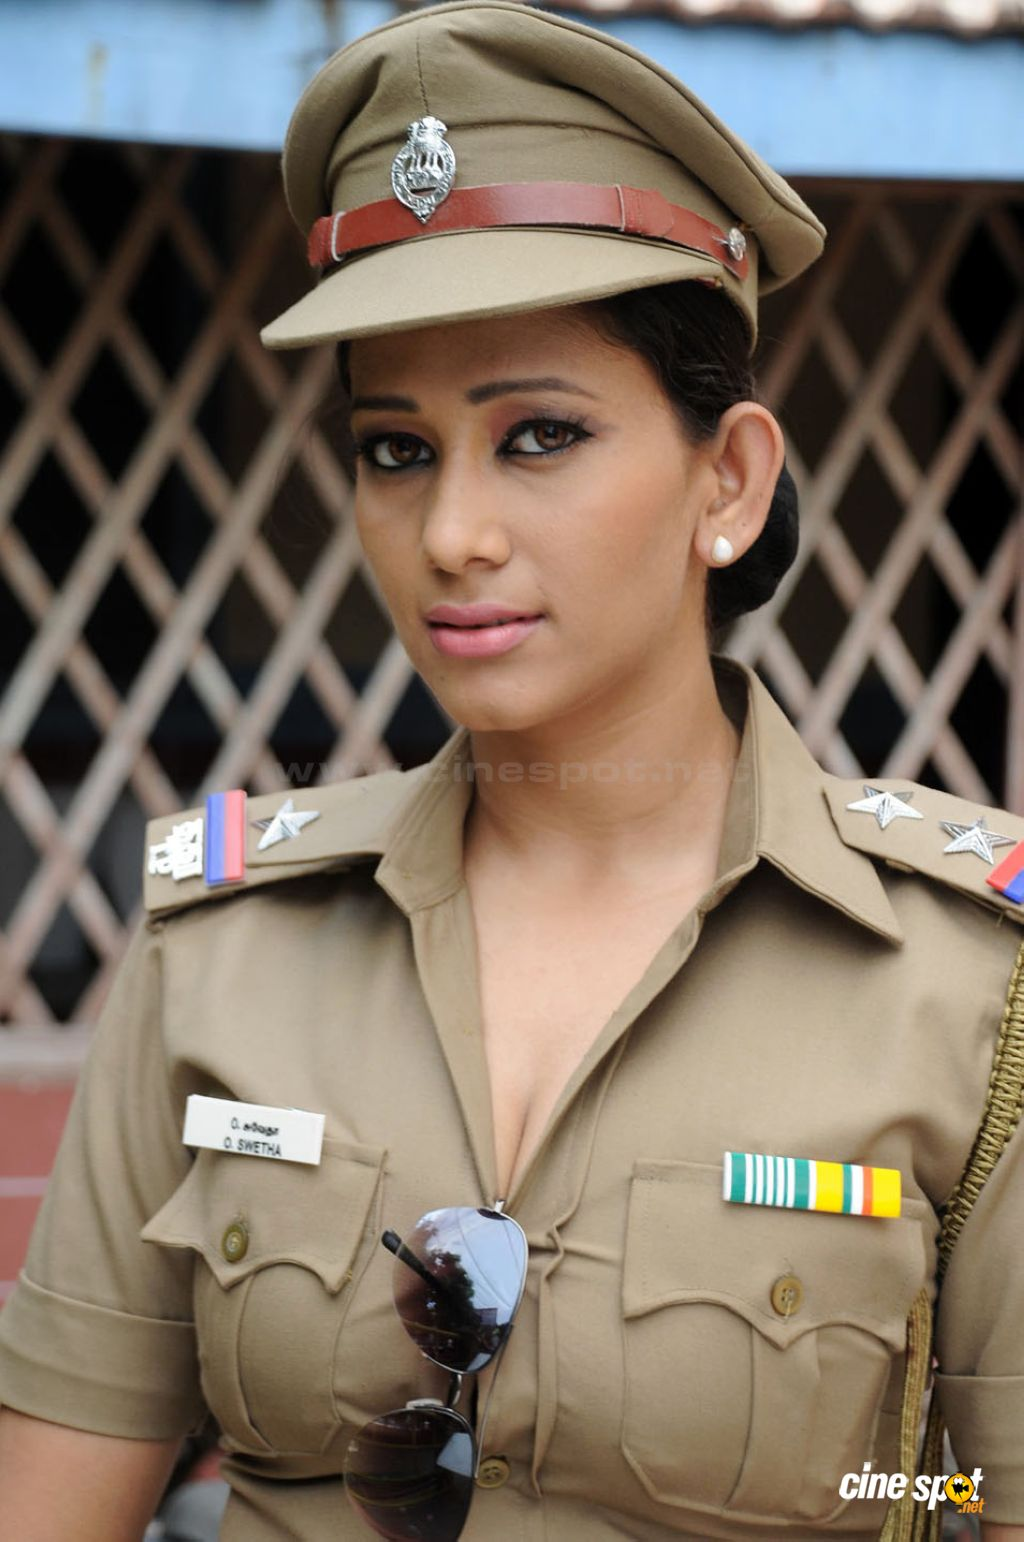 Sexy big boobs police officer 2 8